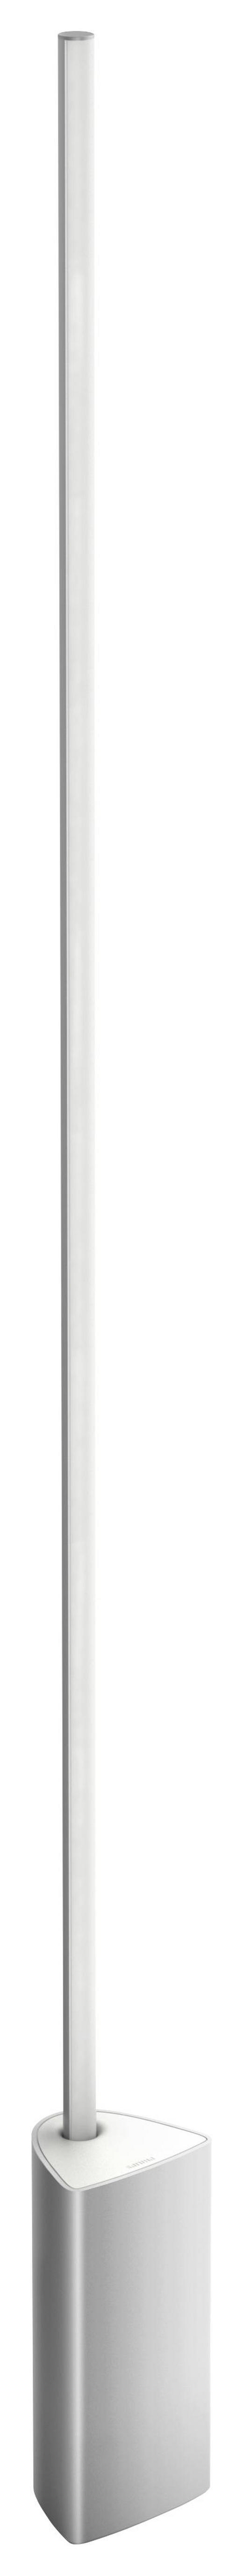 STEHL. HUE WHITE&COLOR AMBIAN. - Silberfarben, Design, Metall (11,5/149/9,5cm) - Philips